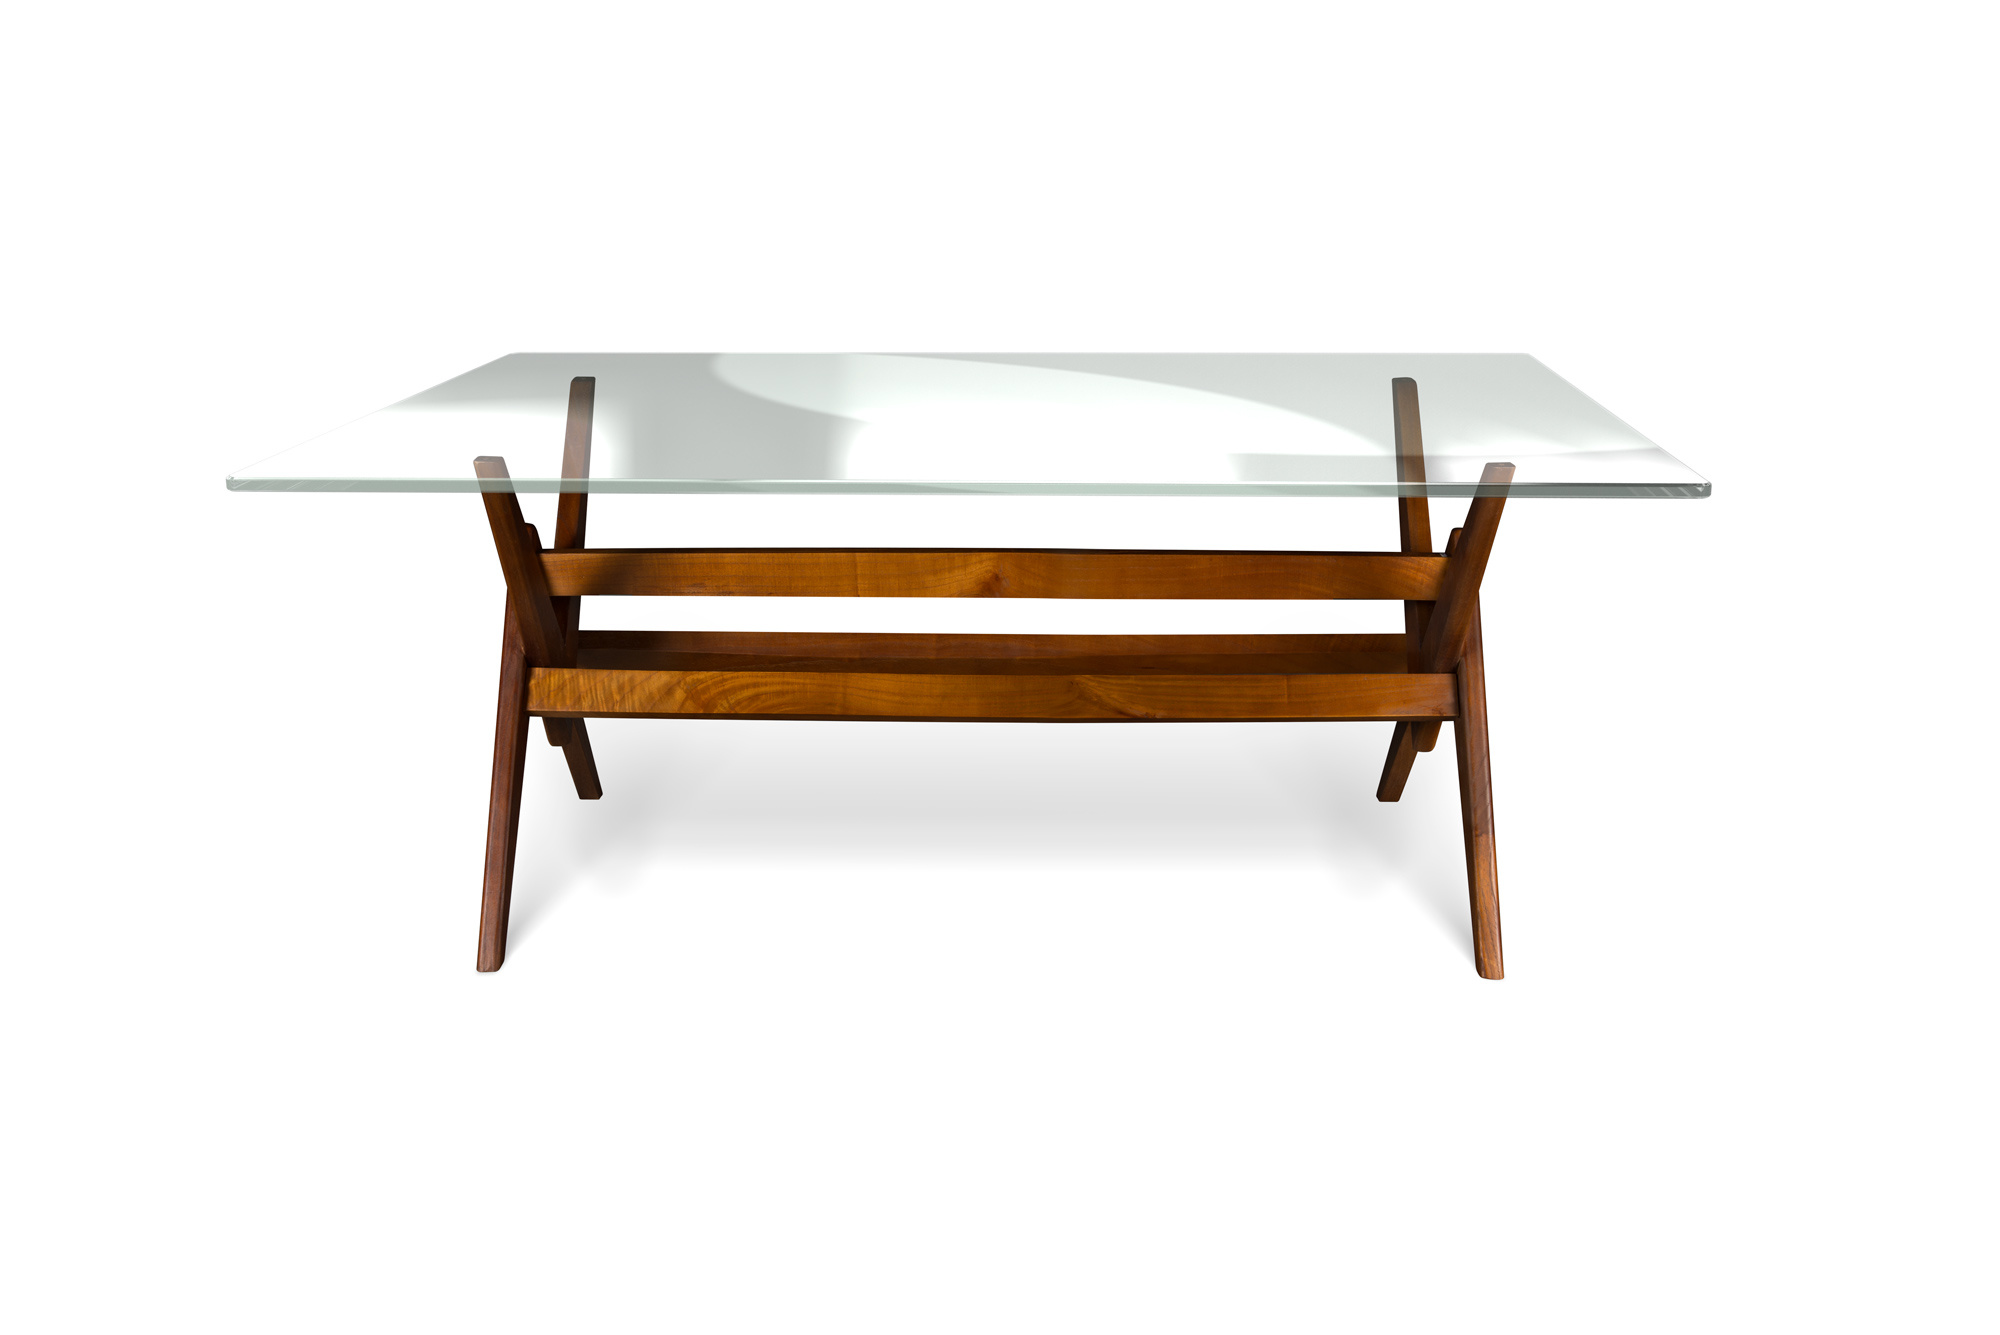 Table W.T.H. 180-4